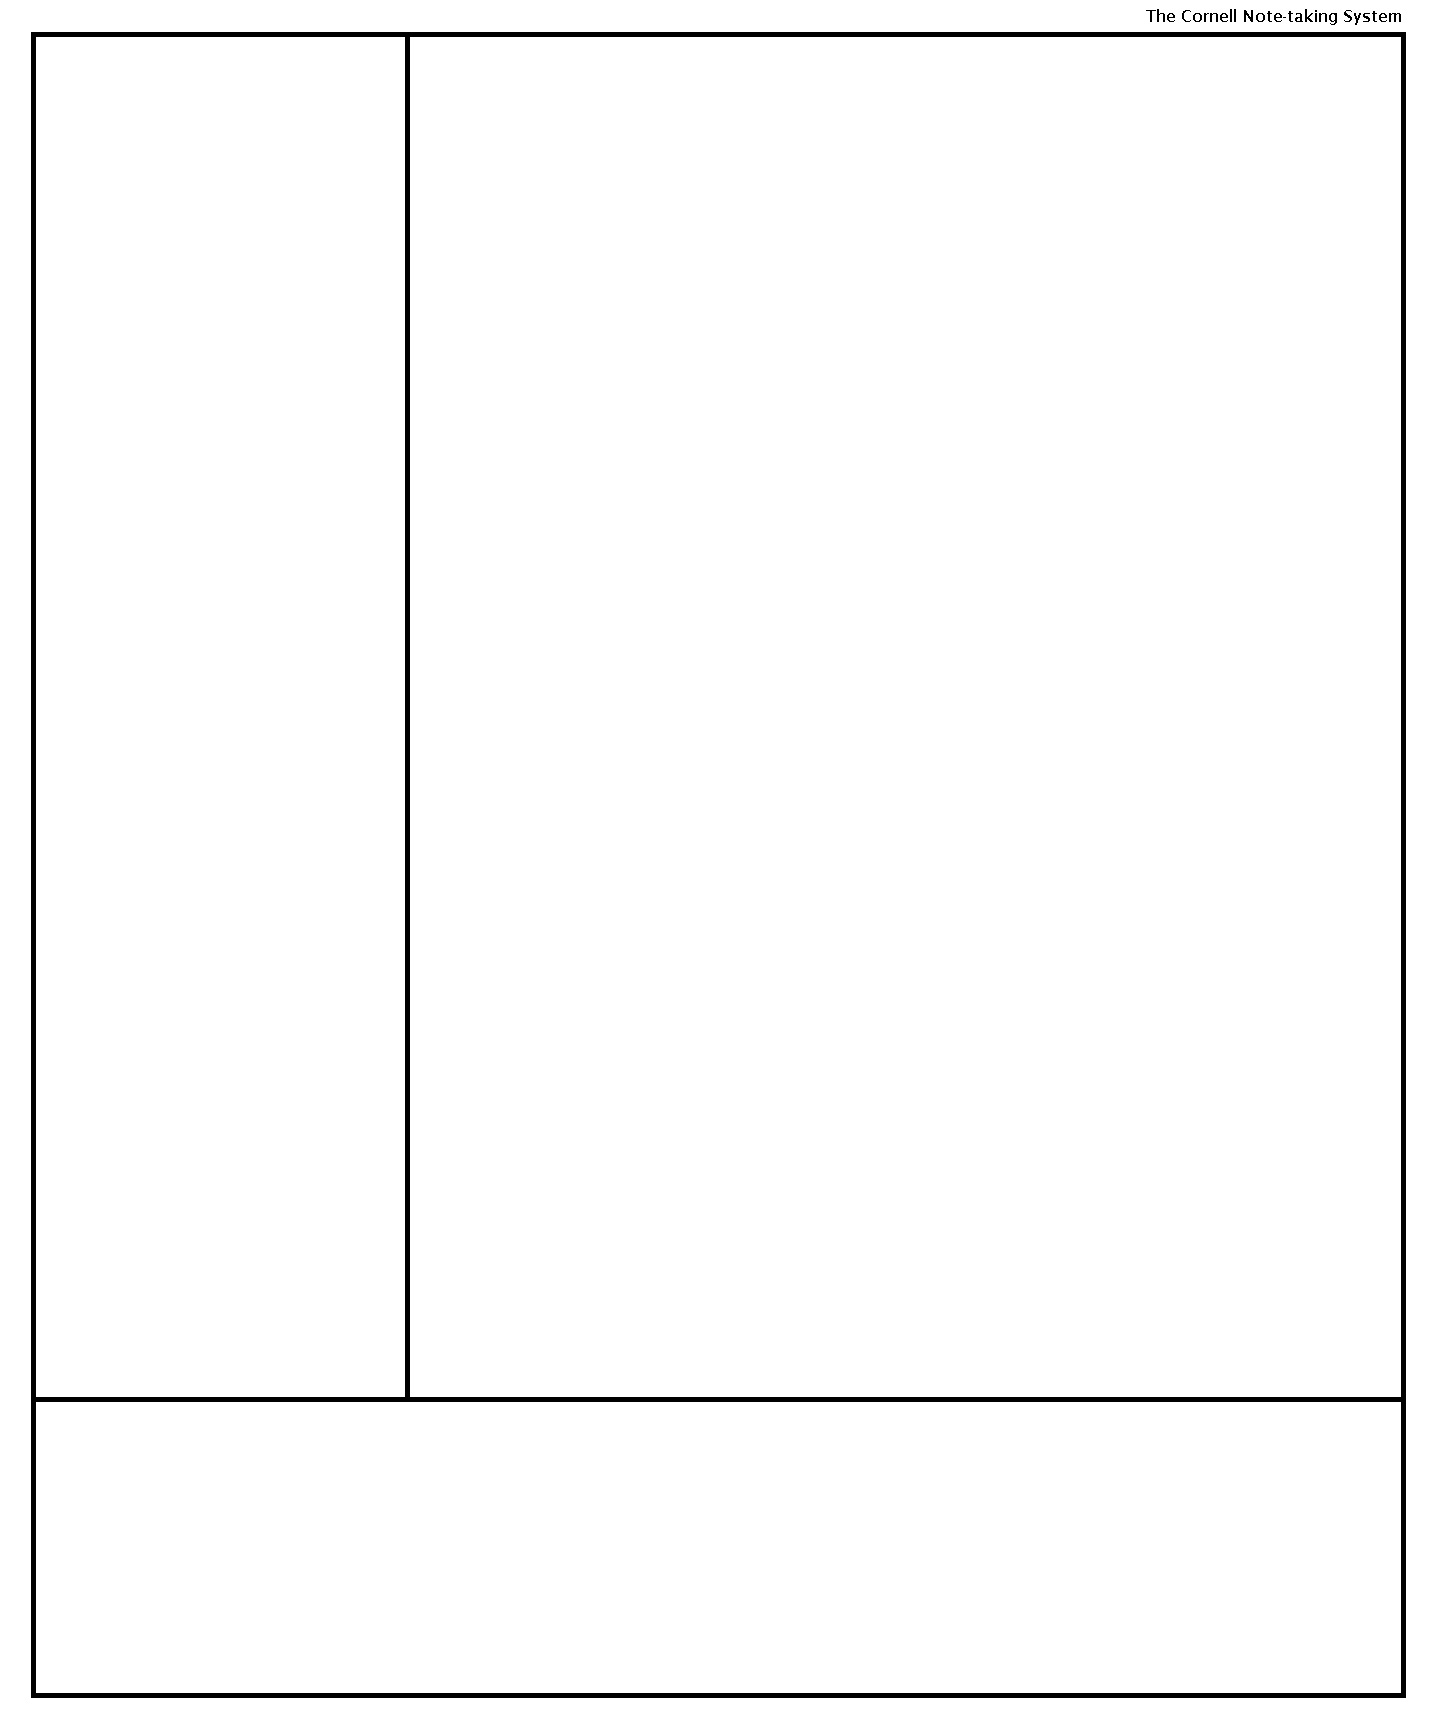 Cornell Note-taking System template template for penultimate